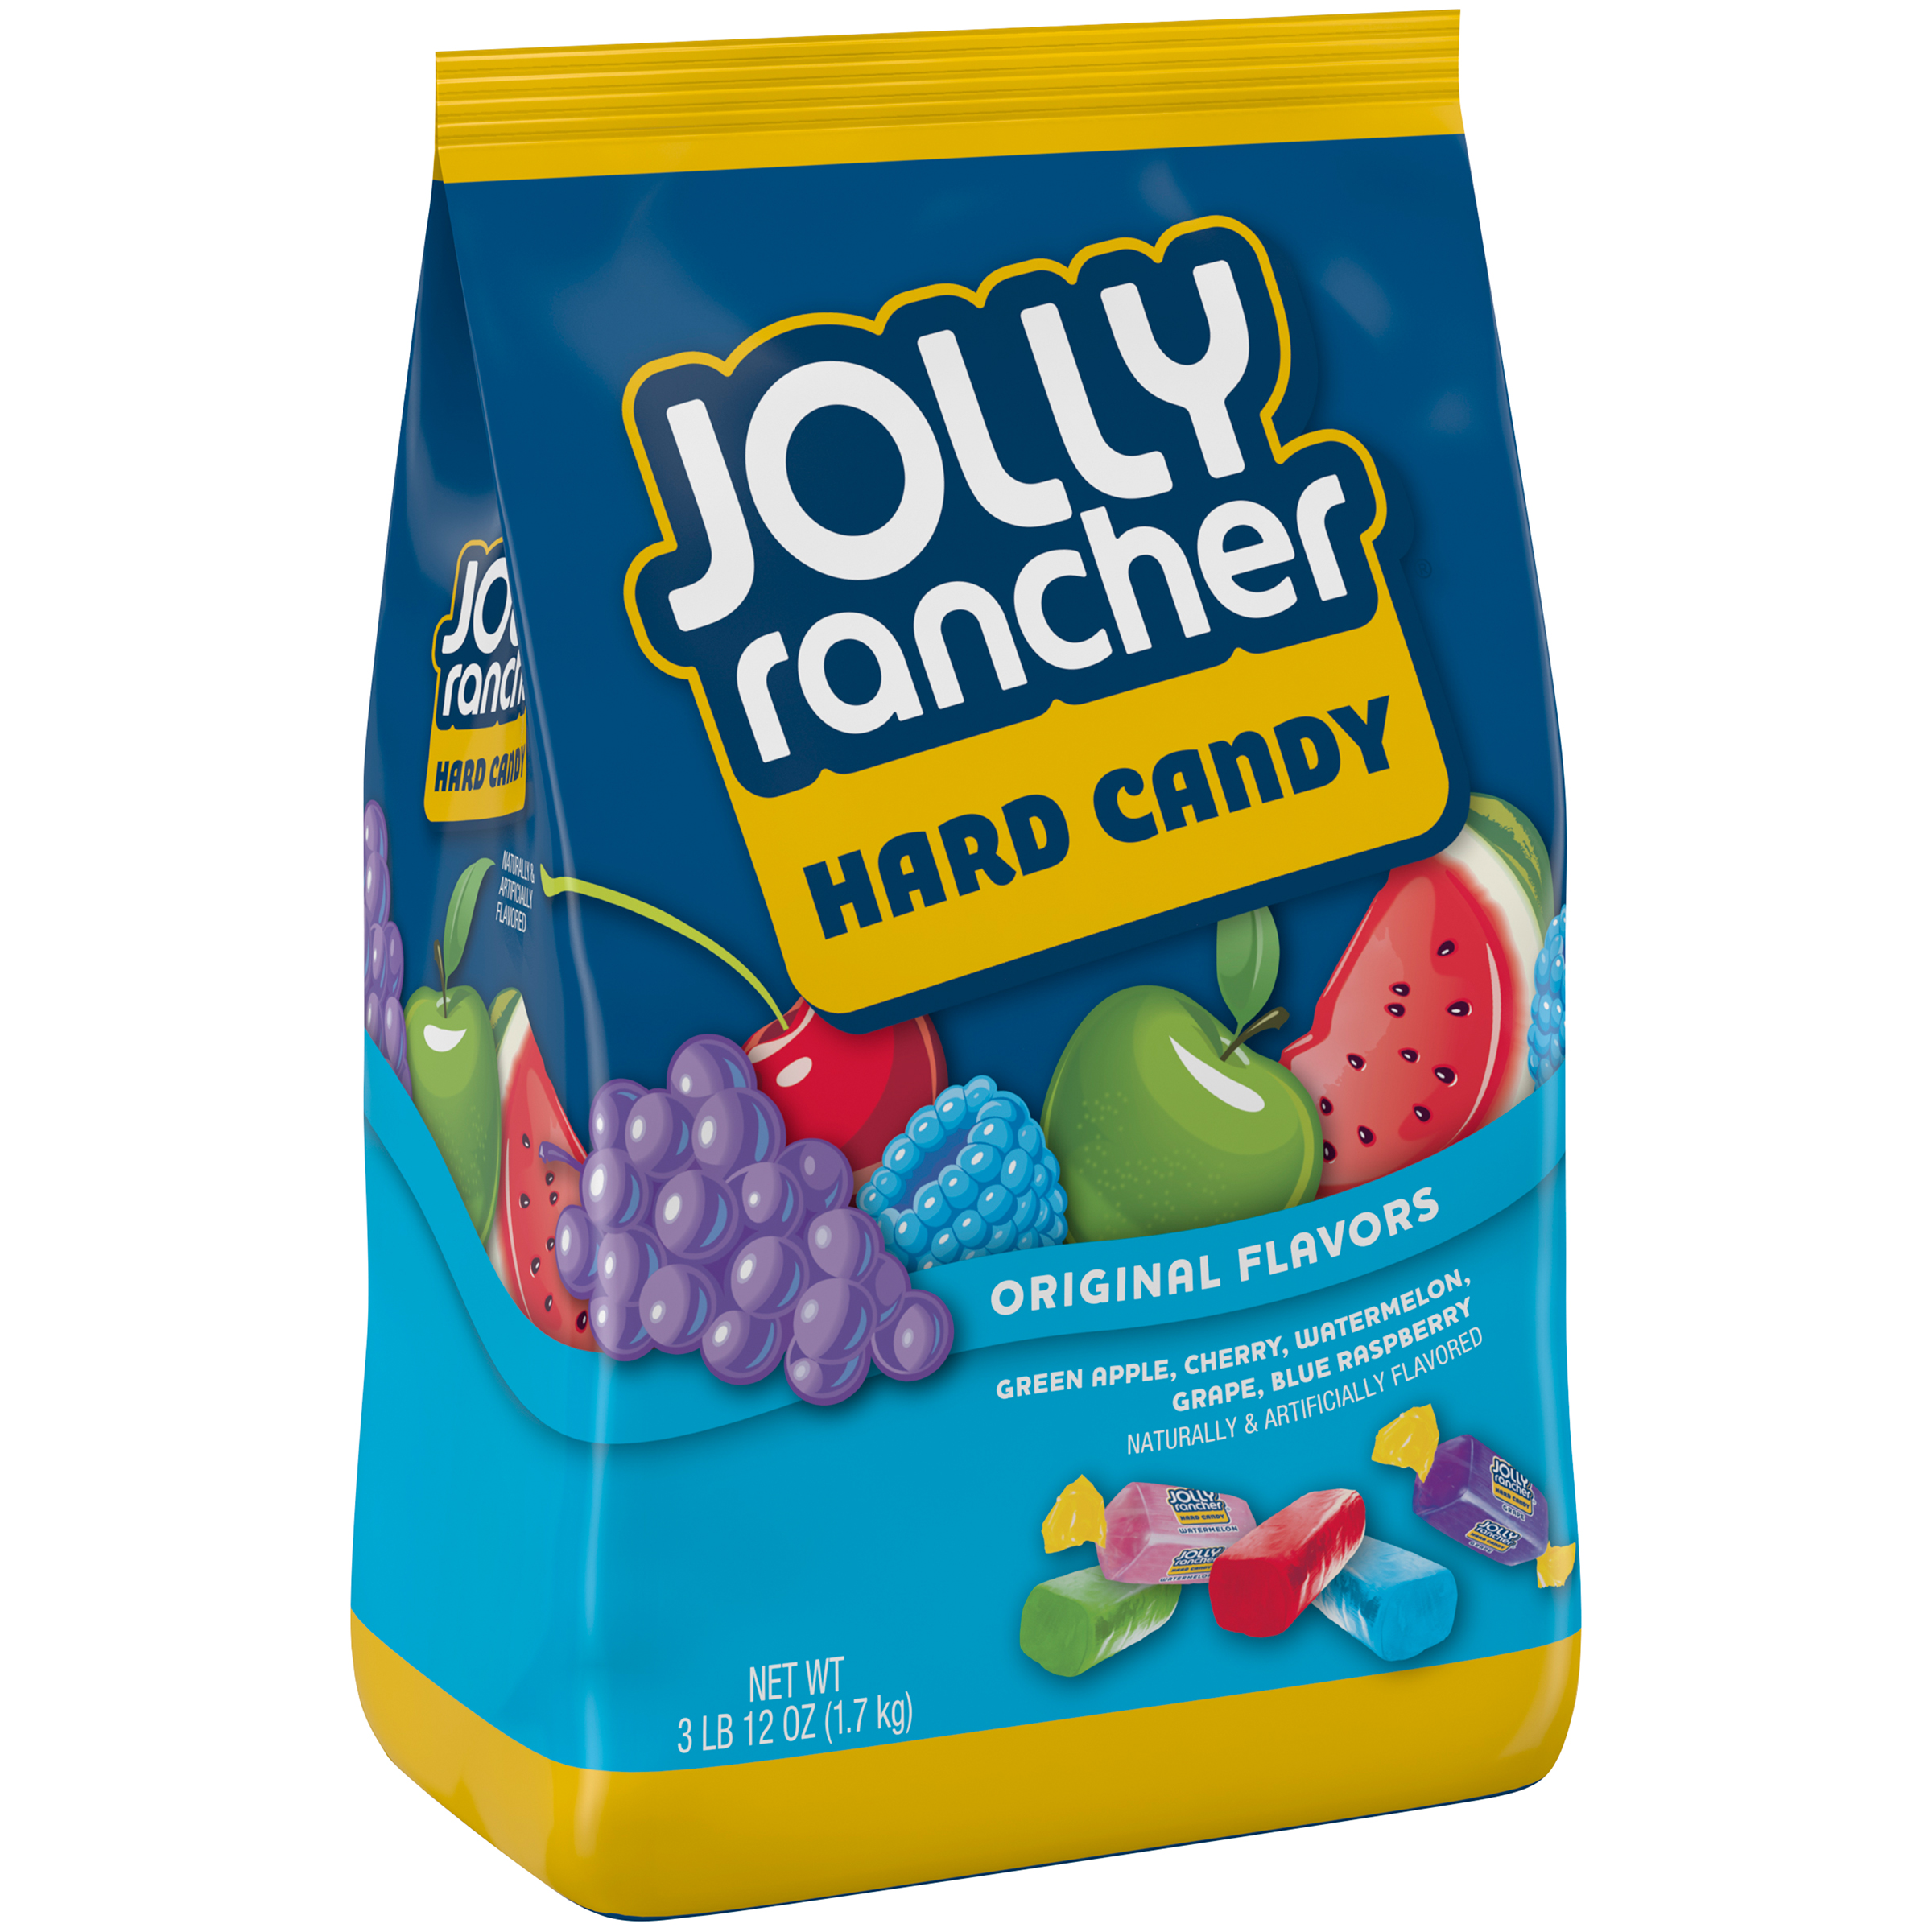 Jolly Rancher Hard Candy Assortment 3.75 lb. Bag